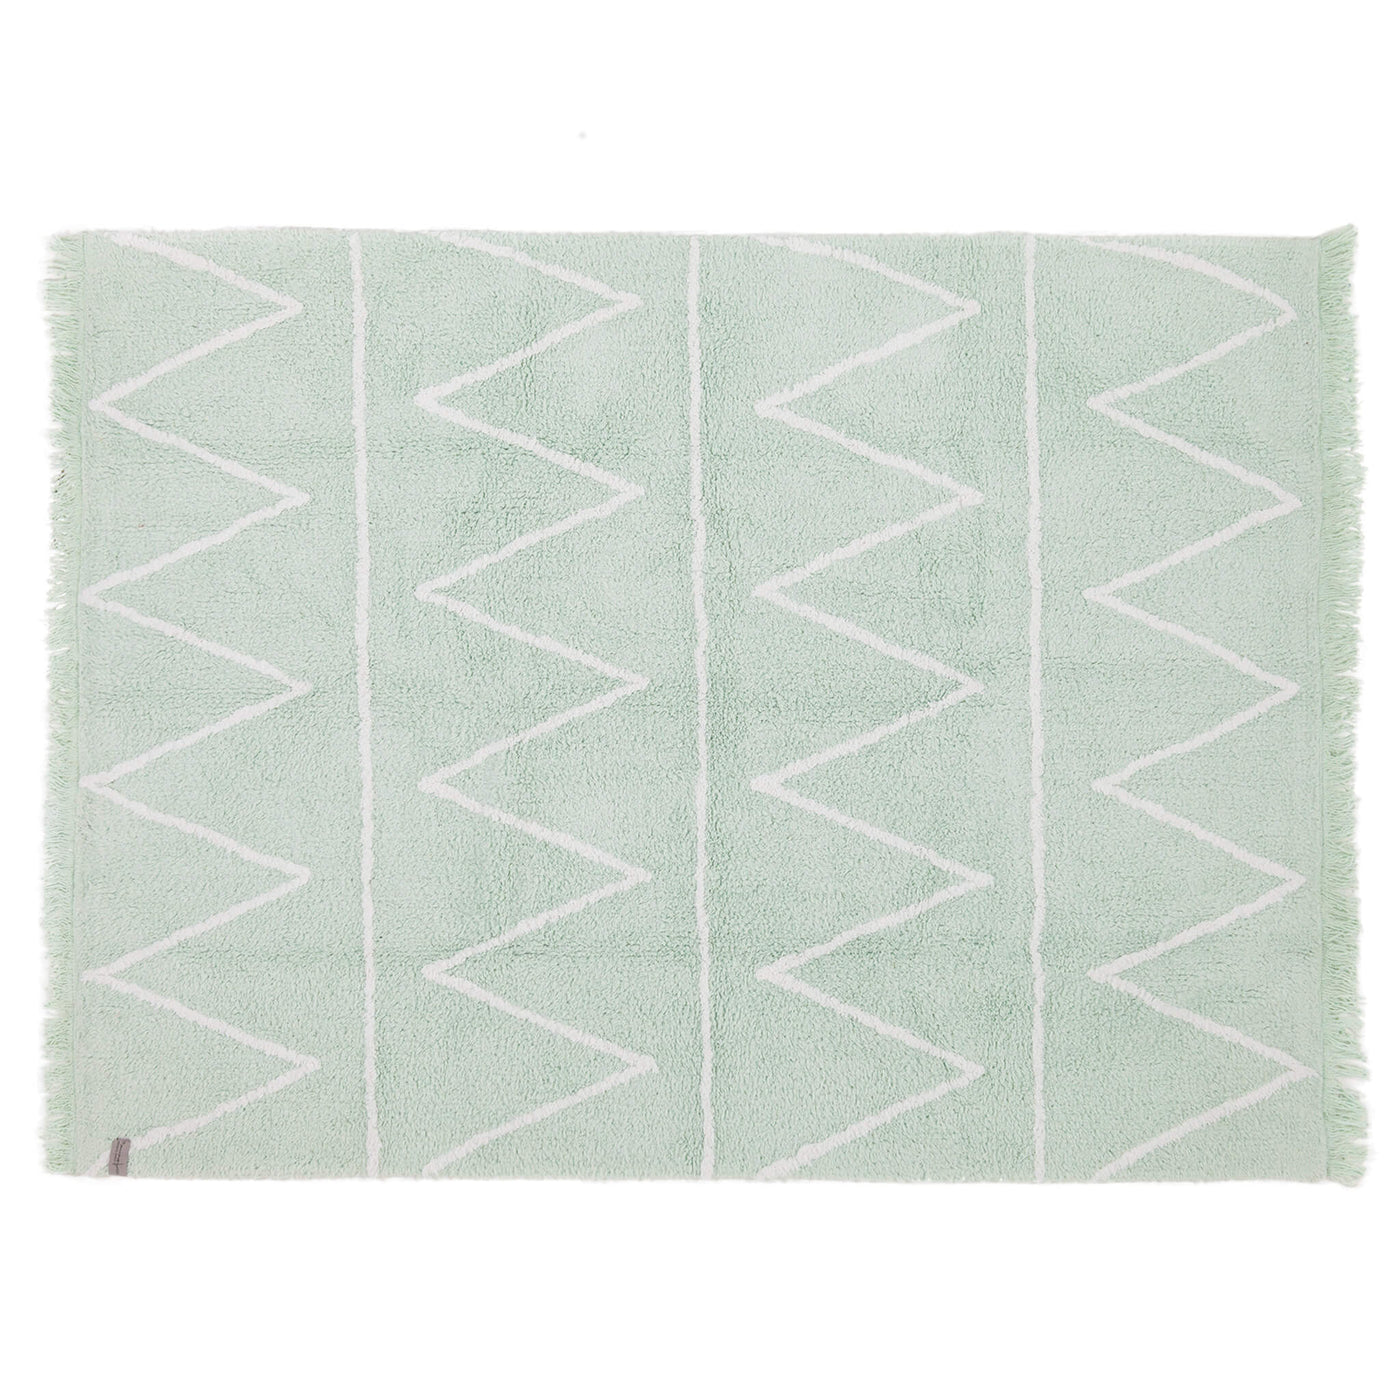 Hippy Washable Rug - Mint